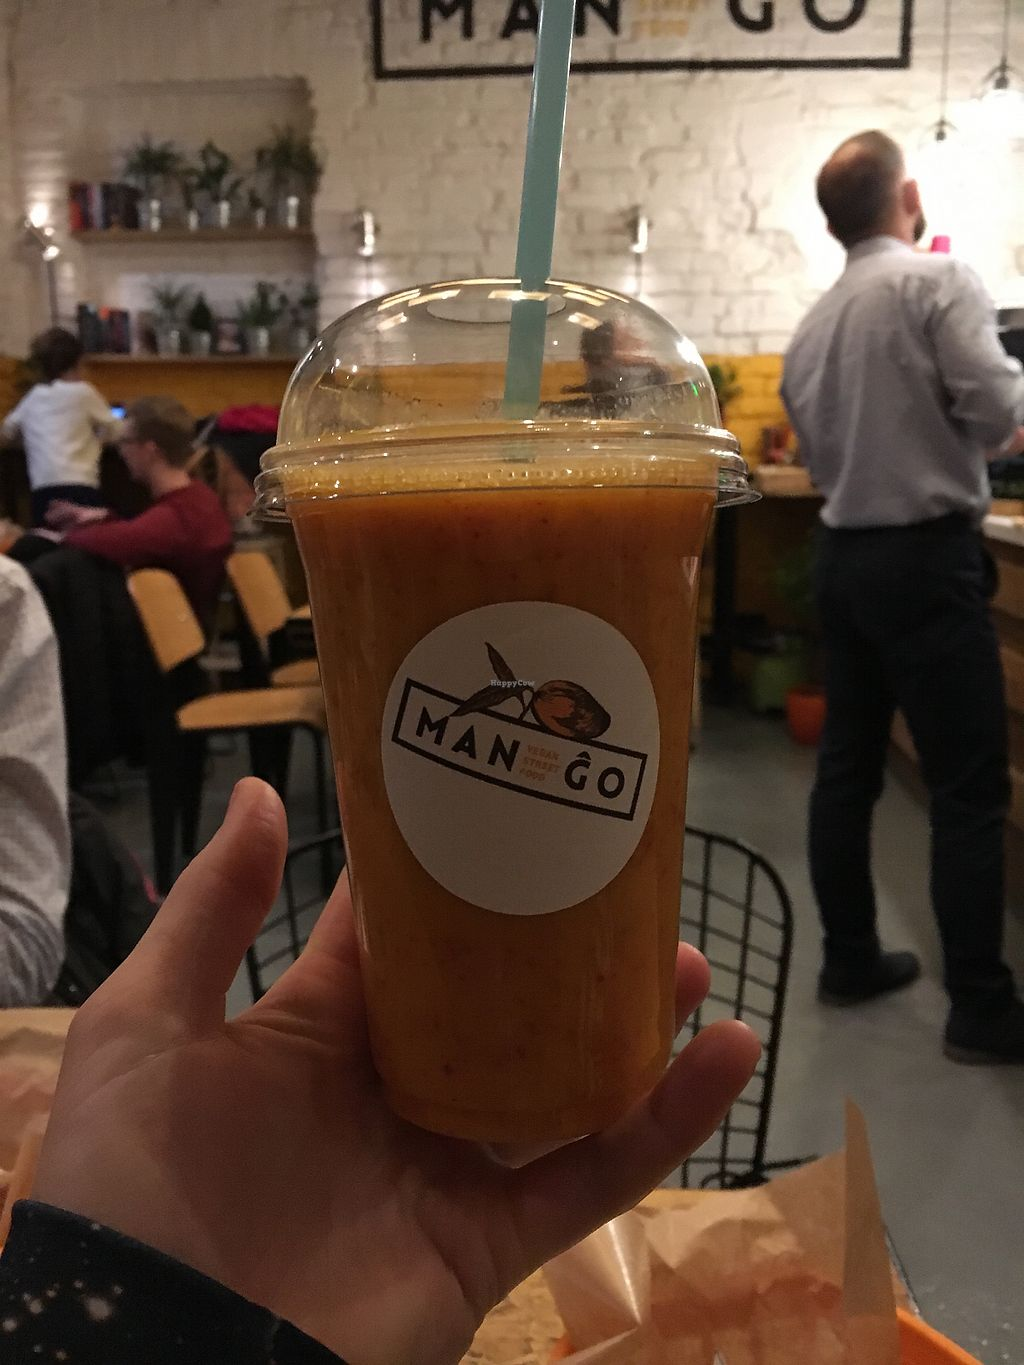 """Photo of Mango Vegan Street Food - Bracka  by <a href=""""/members/profile/Mermitate"""">Mermitate</a> <br/>The best smoothie ever!  <br/> November 17, 2017  - <a href='/contact/abuse/image/56119/326526'>Report</a>"""